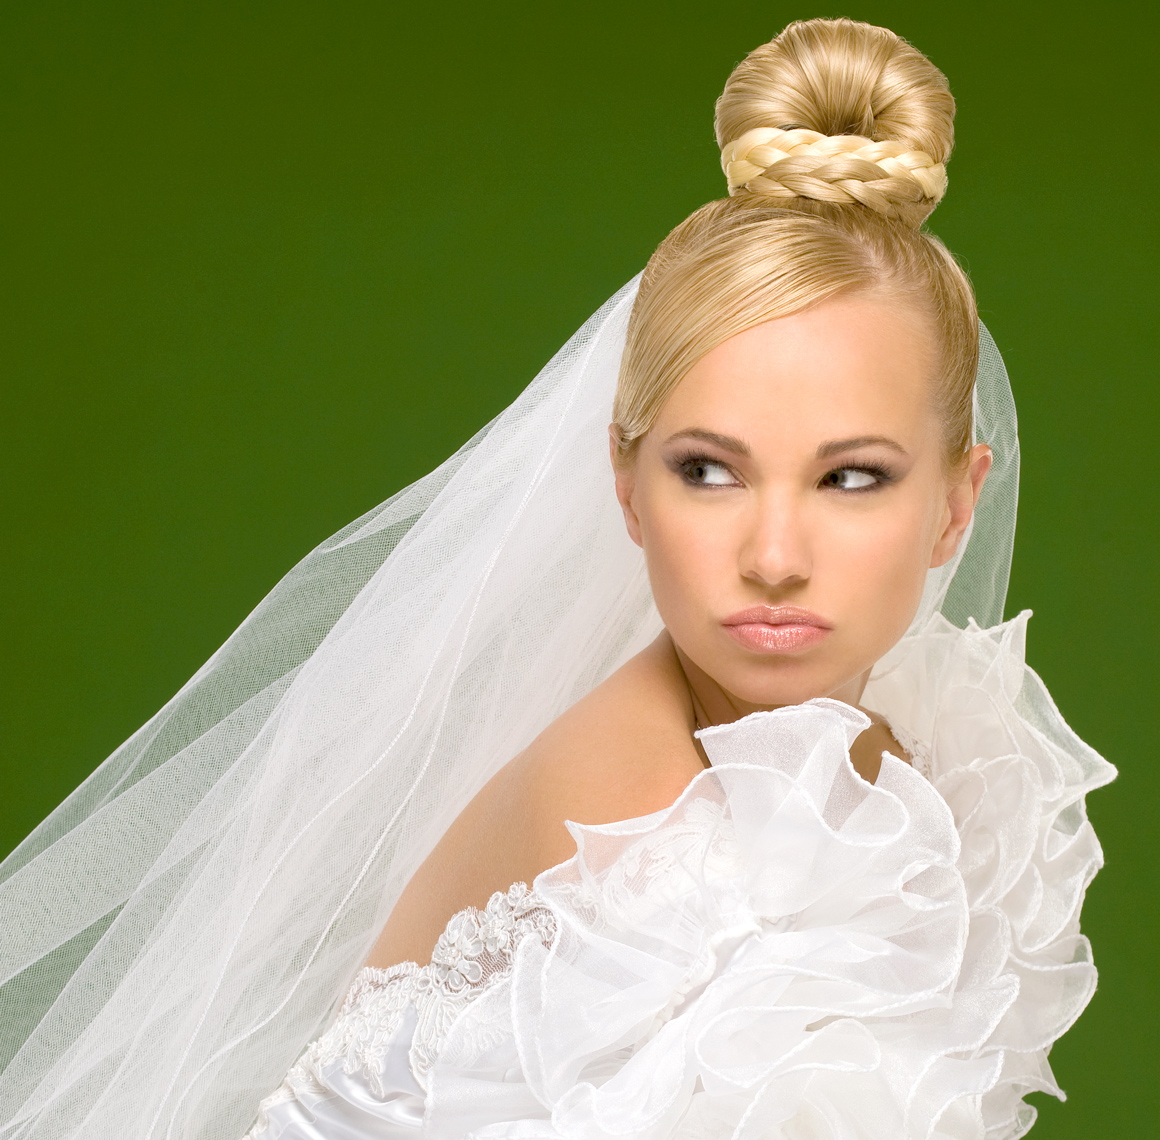 Christie-Bridal-photographed-by-Joe-Henson-Best-Actors-Headshot-Photographer-NYC-NY-New-York-Washington-DC-Boston-Paris-London-Berlin-Avedon-Penn-Marco-Grob-Annie-Leibovitz-Peter-Hurley-Jordan-Matter-Hasselblad